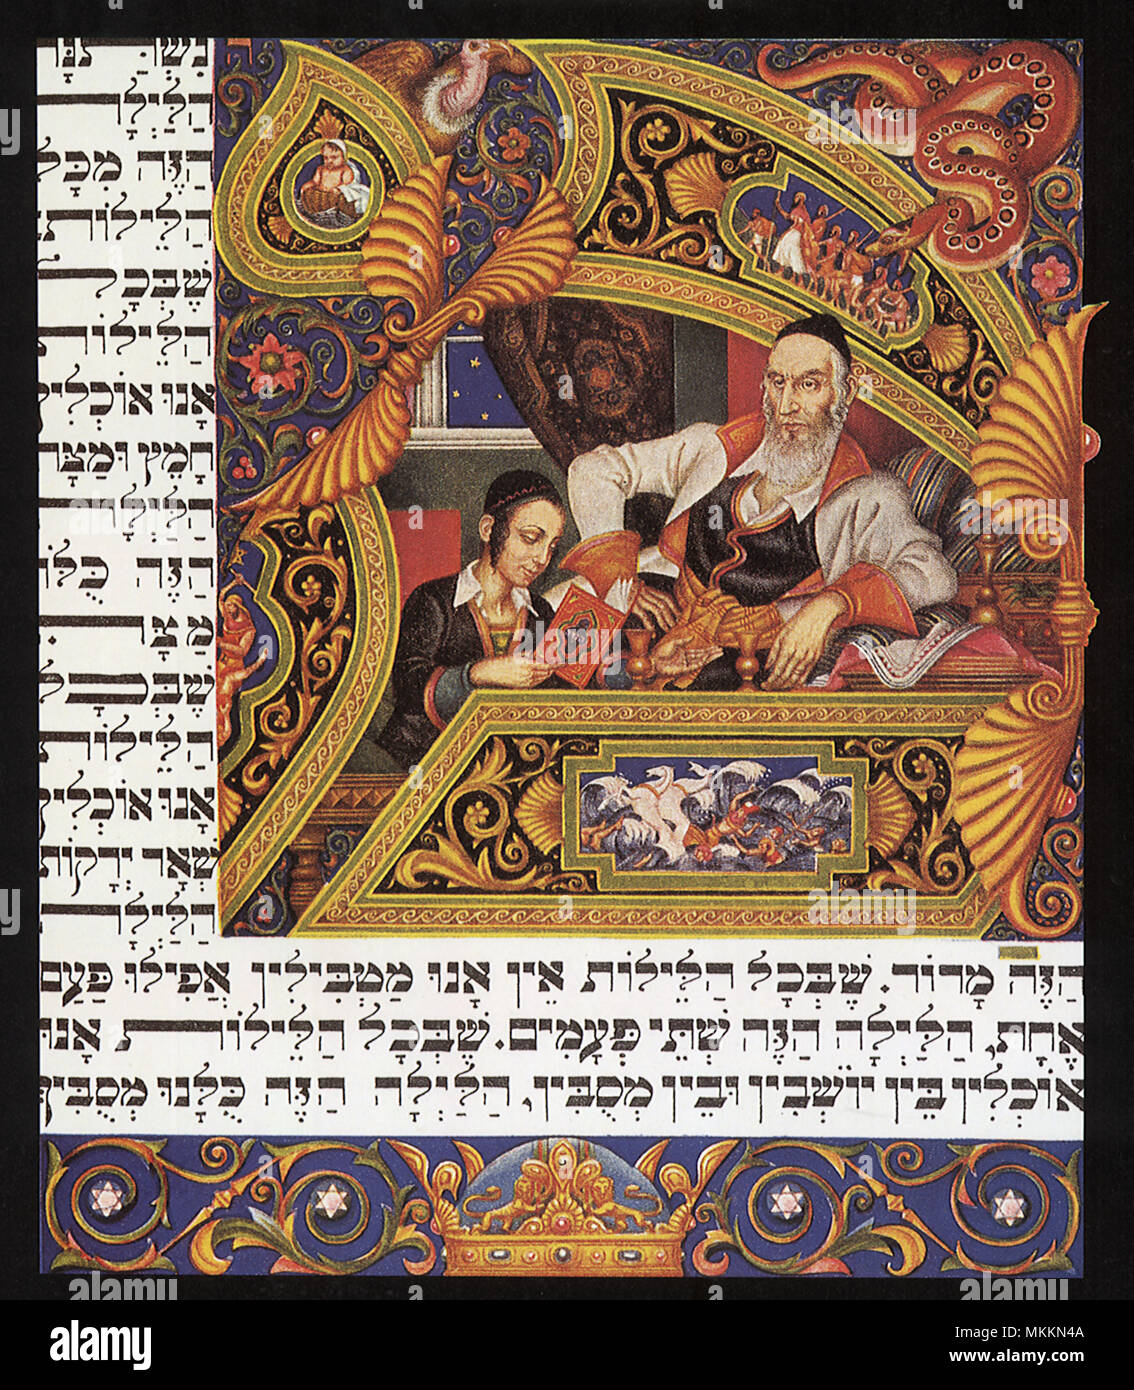 Haggadah depicting The Four Questions - Stock Image